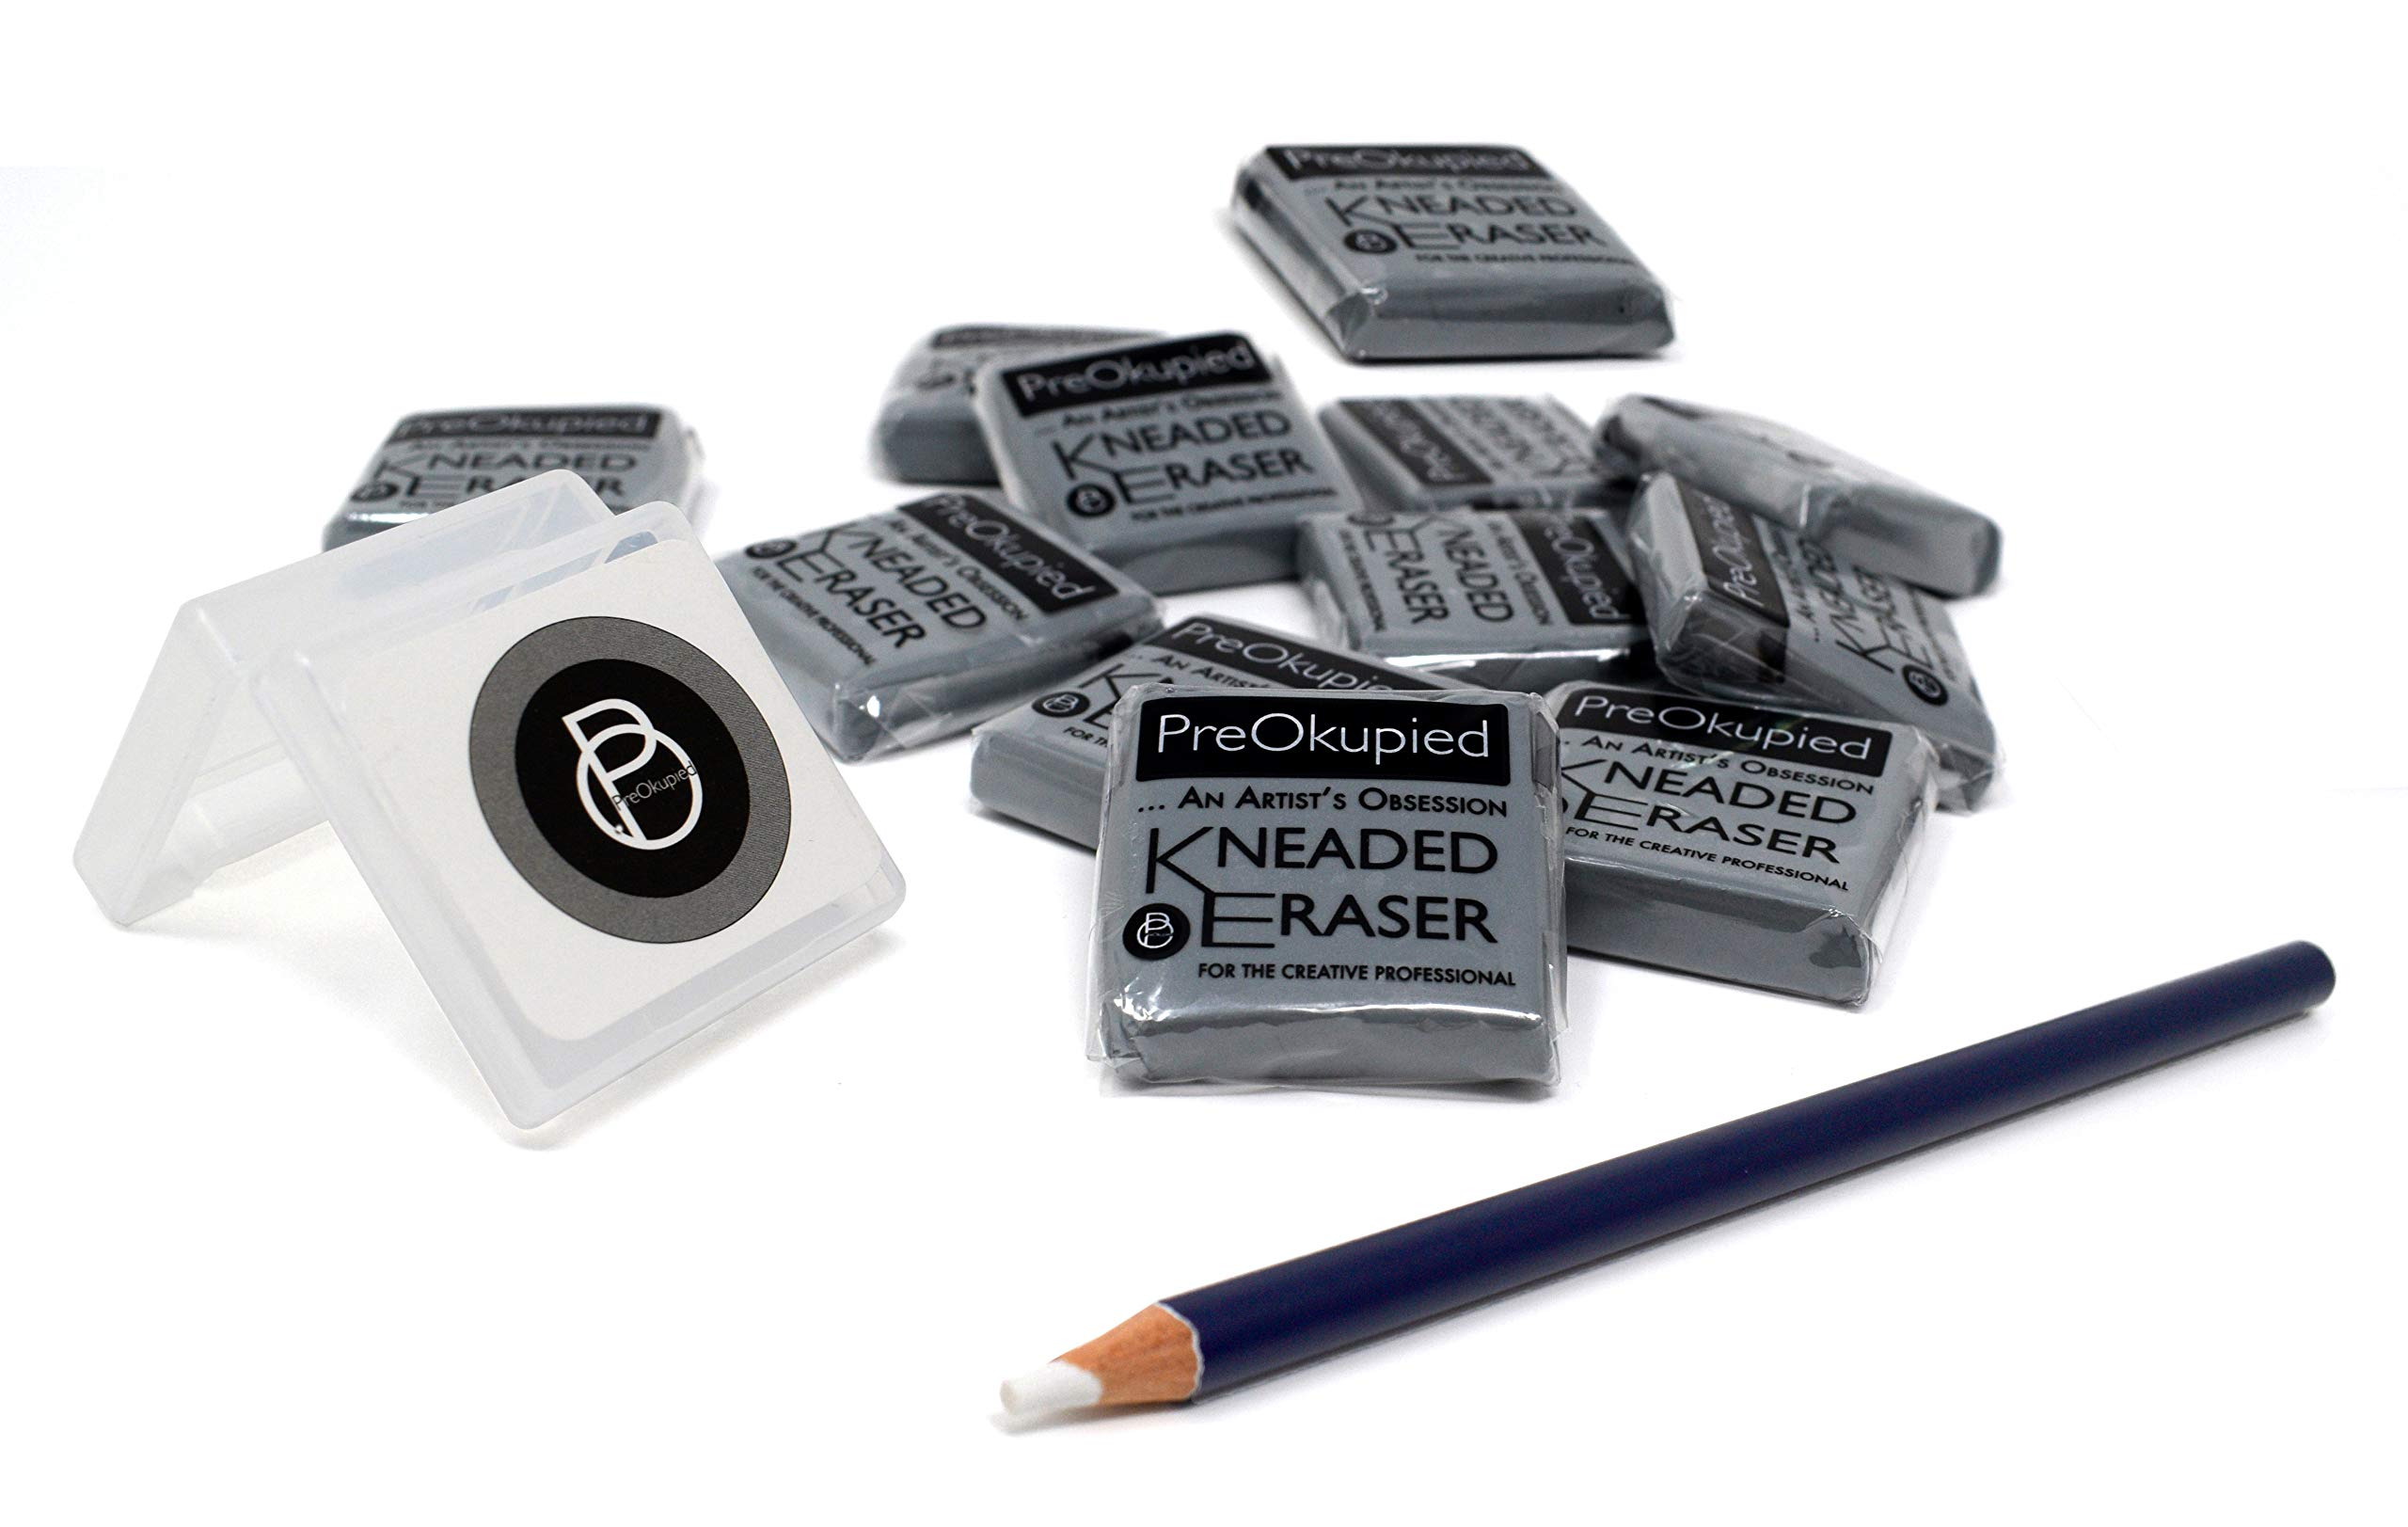 PreOkupied 12 Pack of Kneaded Art Erasers, Gray Putty Rubber, 1.5 x 1.5 x 0.375 Inches per Eraser, Including 1 Eraser Case and 1 Eraser Pencil by PreOkupied